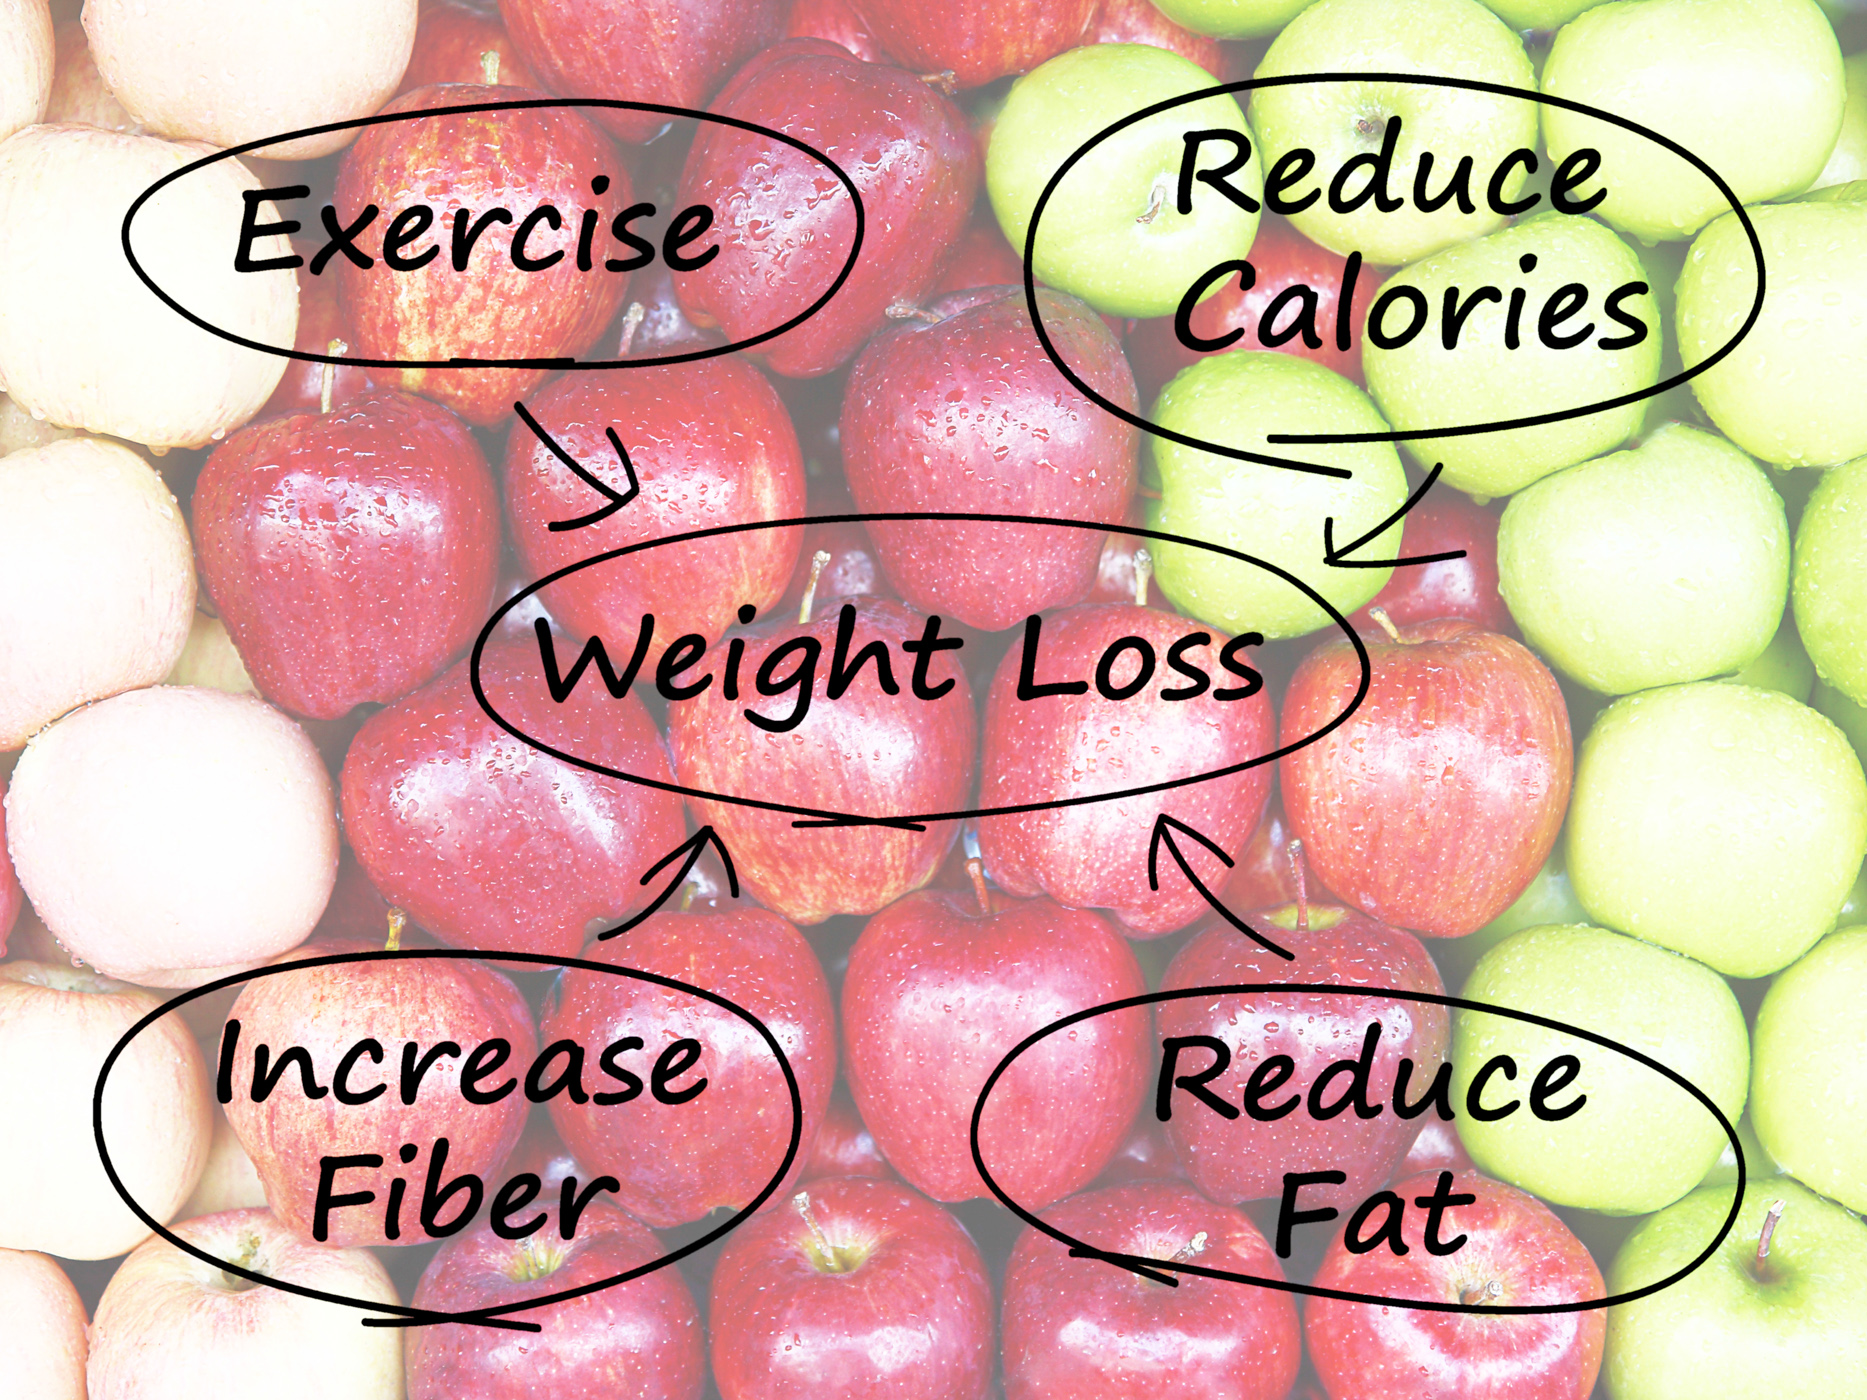 Weight loss diagram shows fiber exercise fat and calories photo